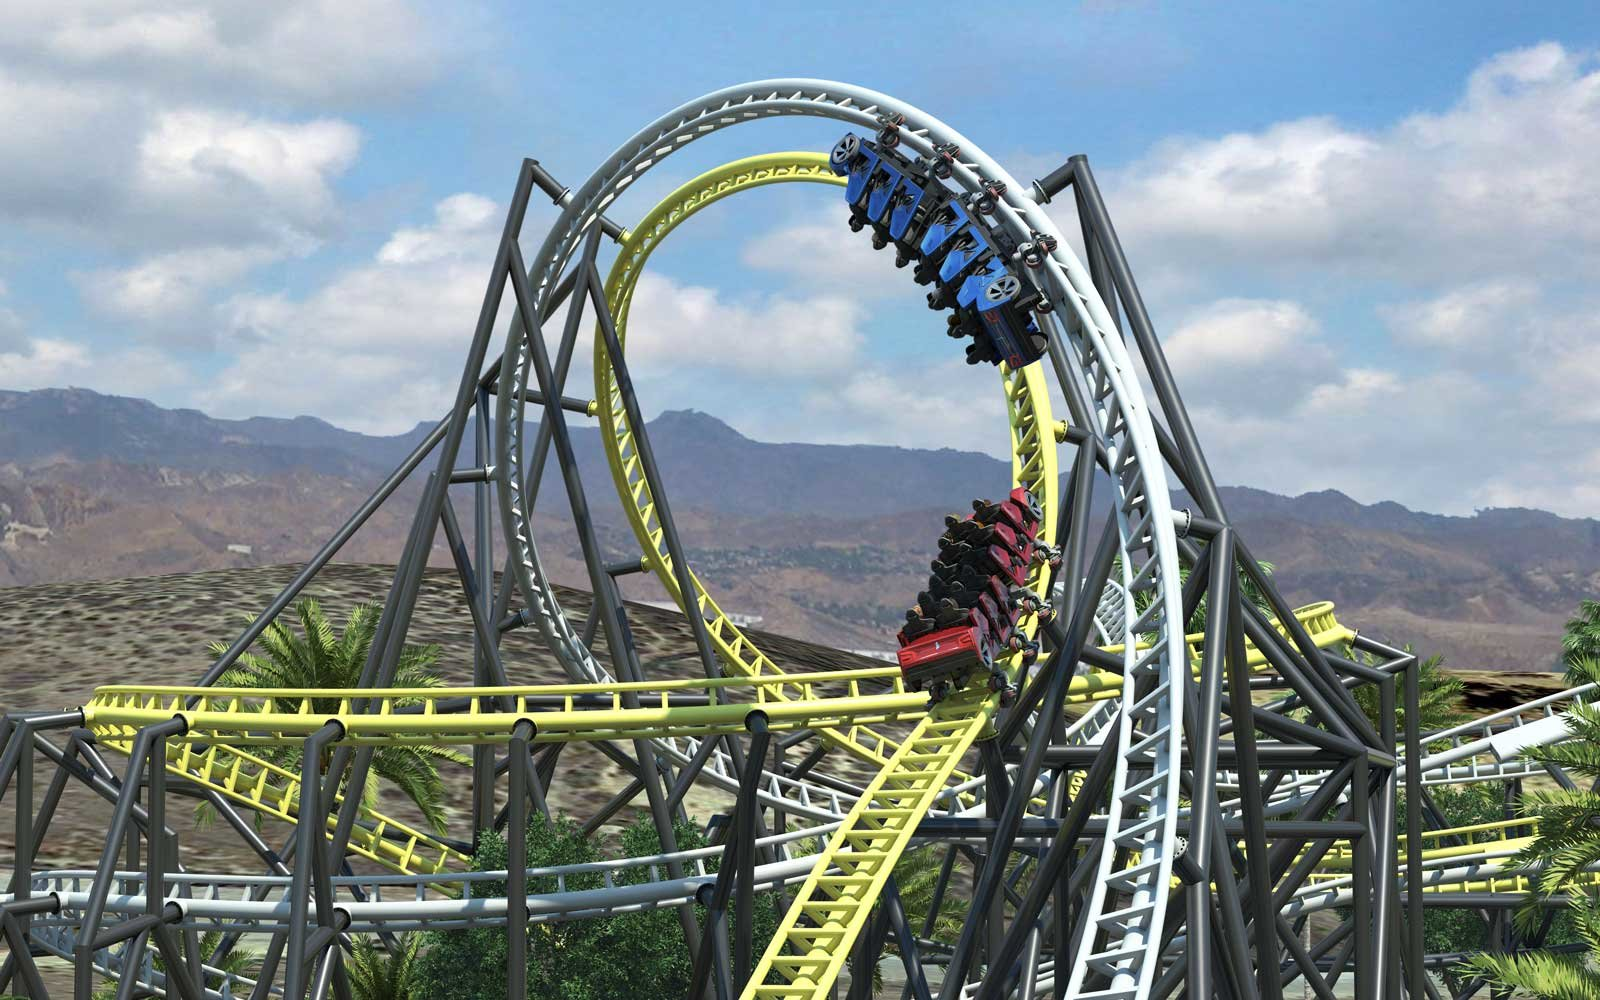 West Coast Racers ride coming to Six Flags Magic Mountain